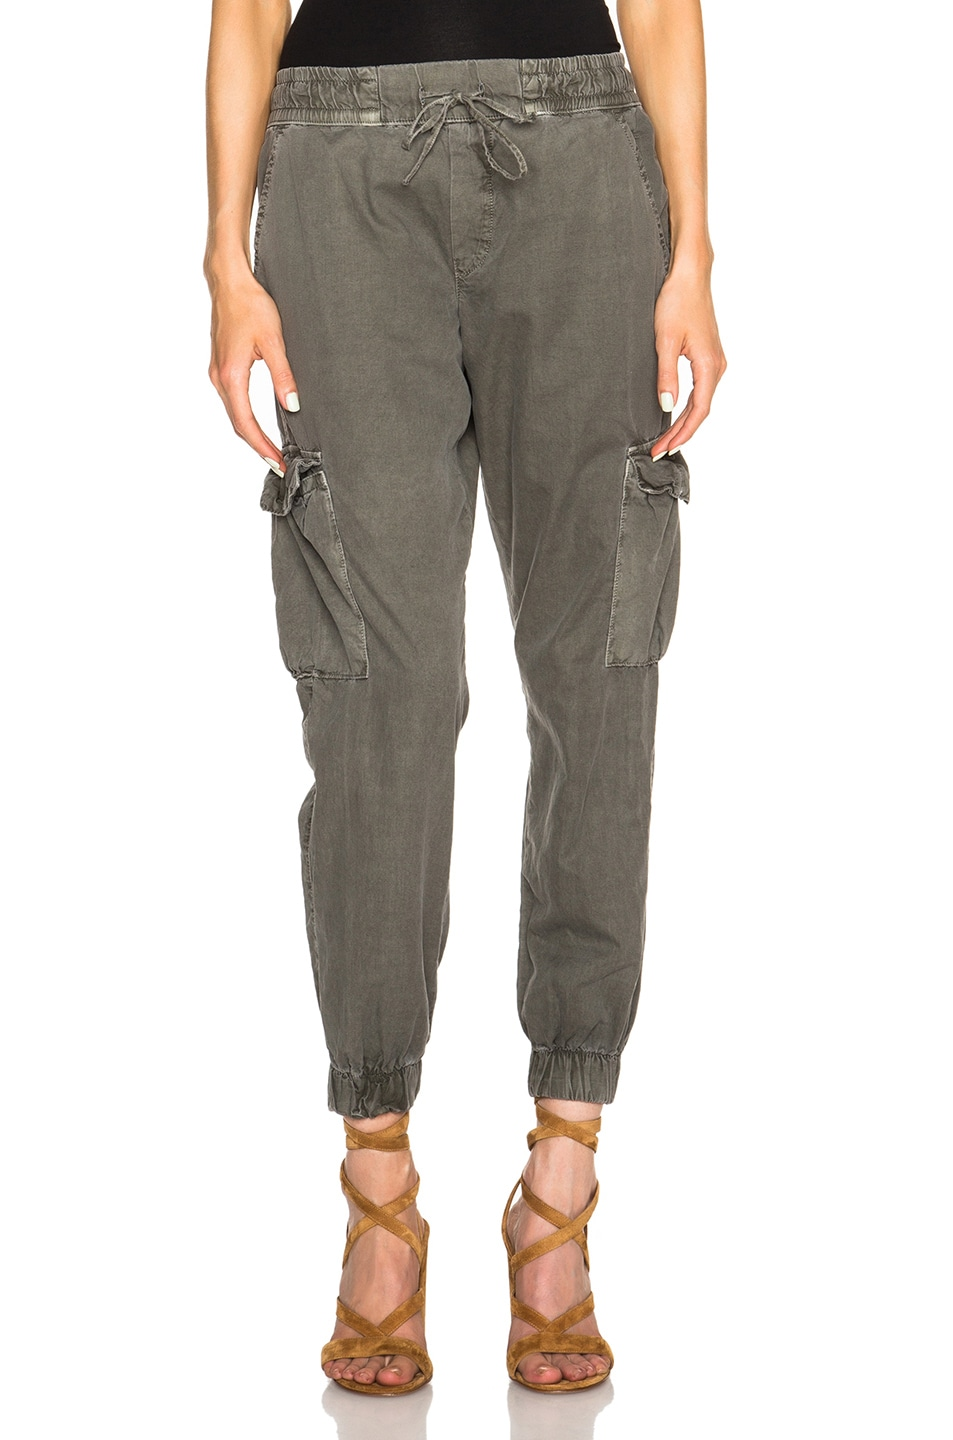 Image 1 of NSF Johnny Pants in Sulpher Army